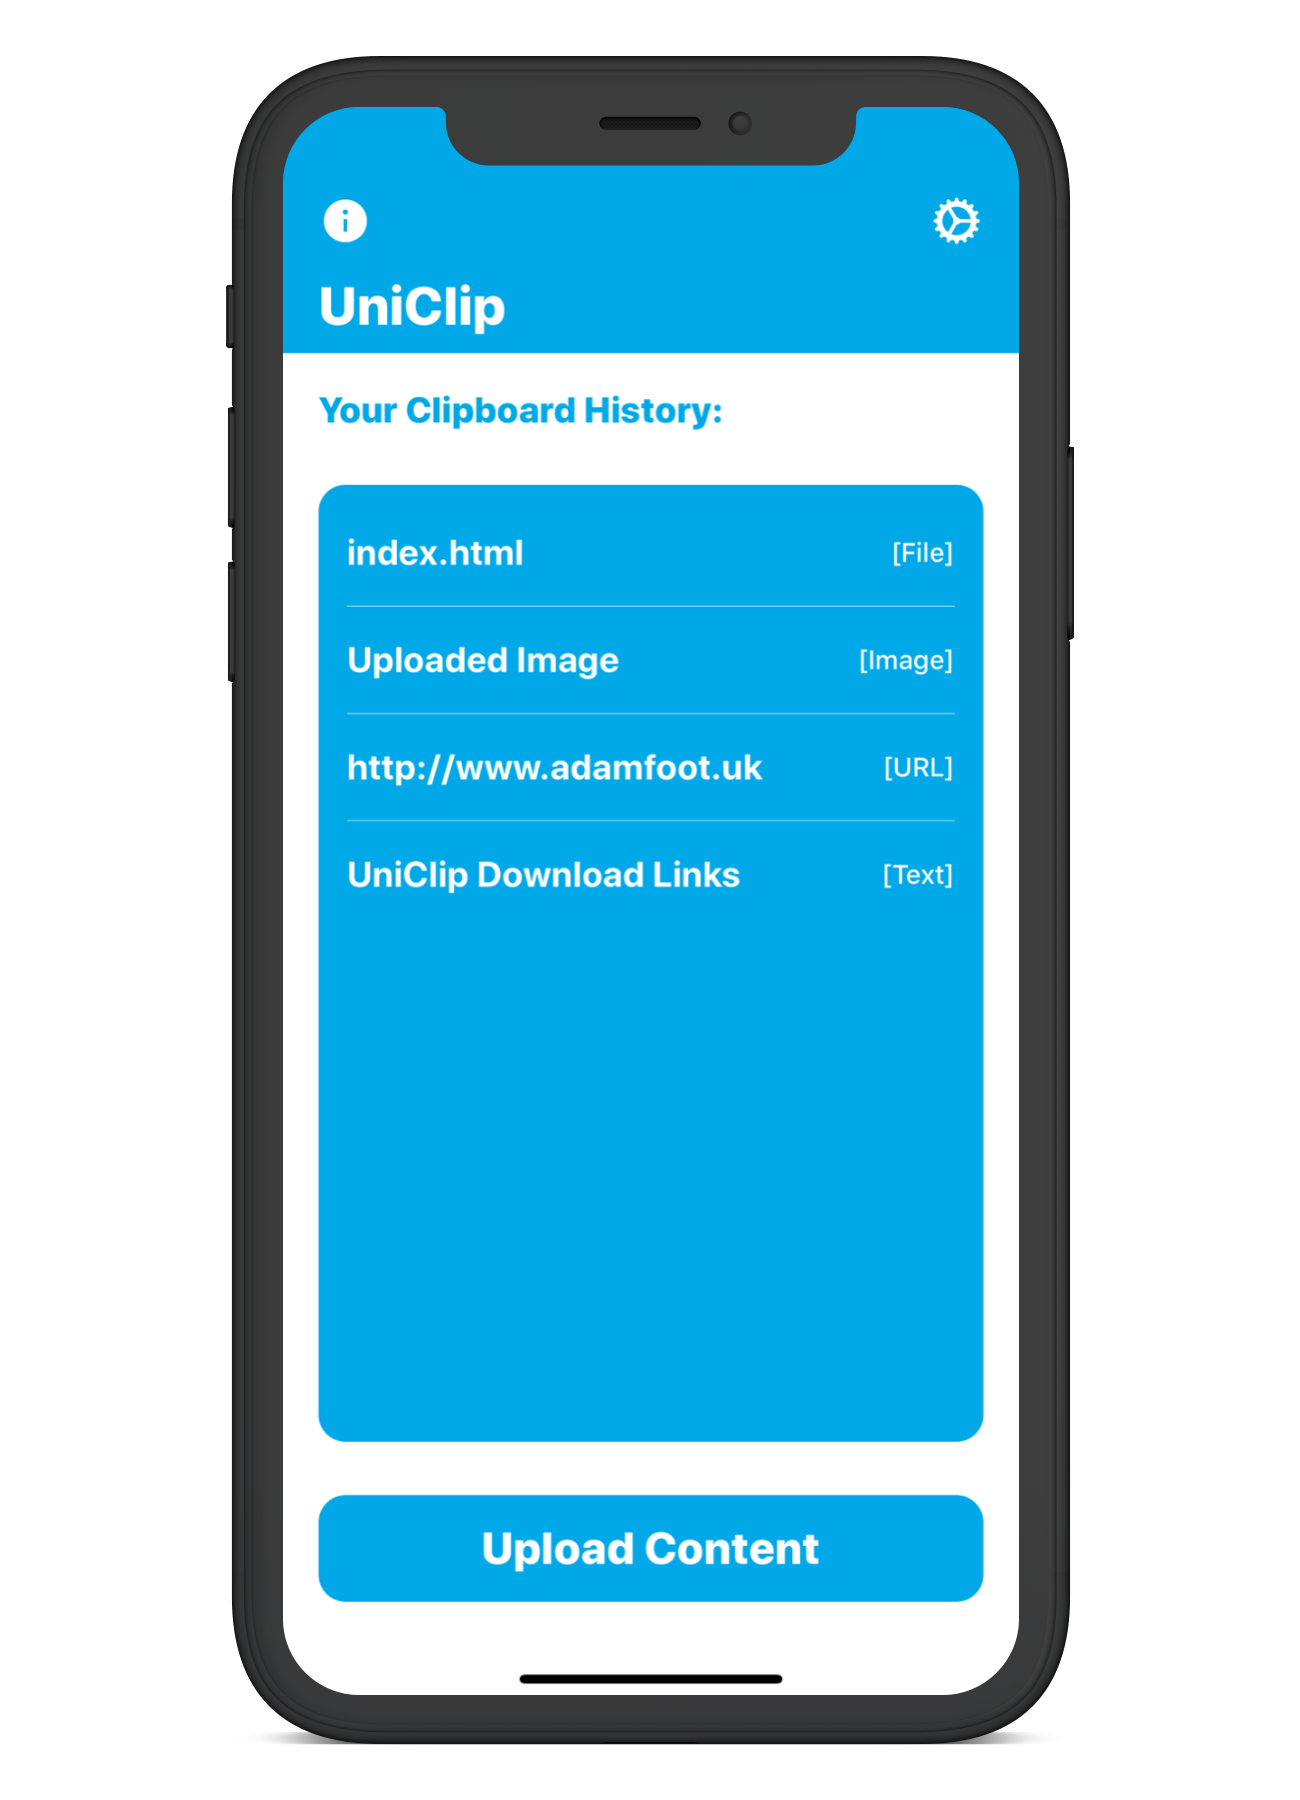 UniClip - A universal clipboard for iOS, macOS & tvOS using iCloud 📝